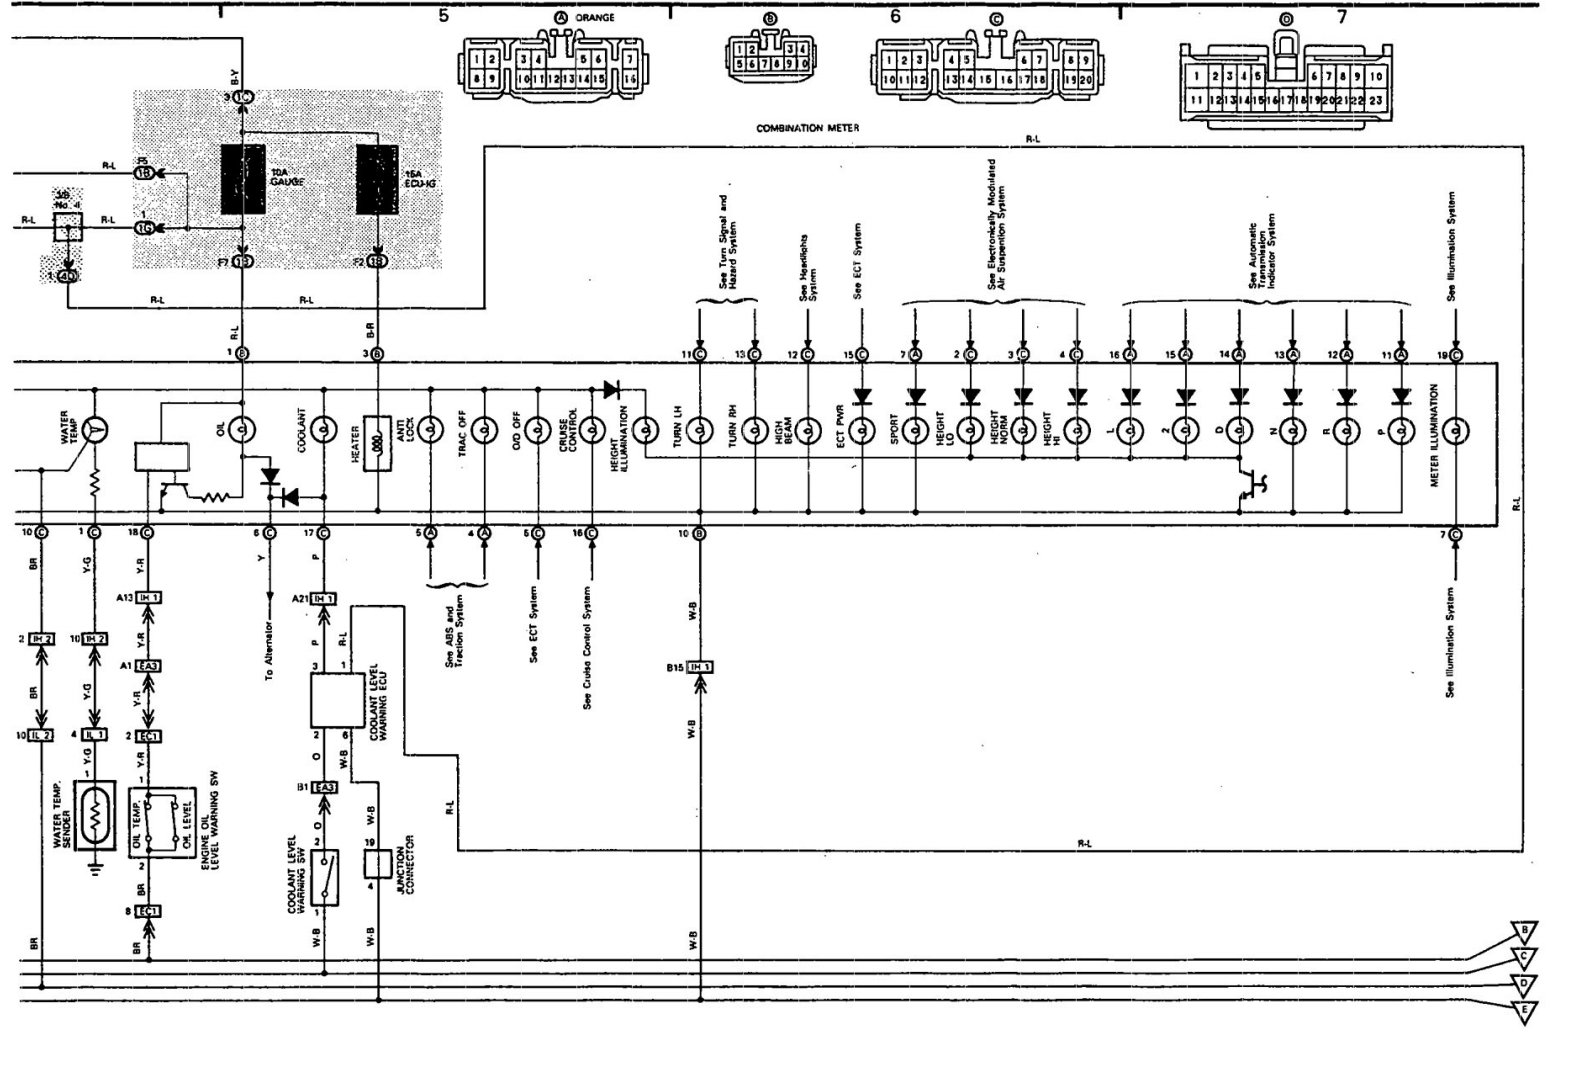 hight resolution of 91 ls400 wiring diagram wiring diagram b7 91 lexus ls400 wiring diagram radio 91 ls400 wiring diagram